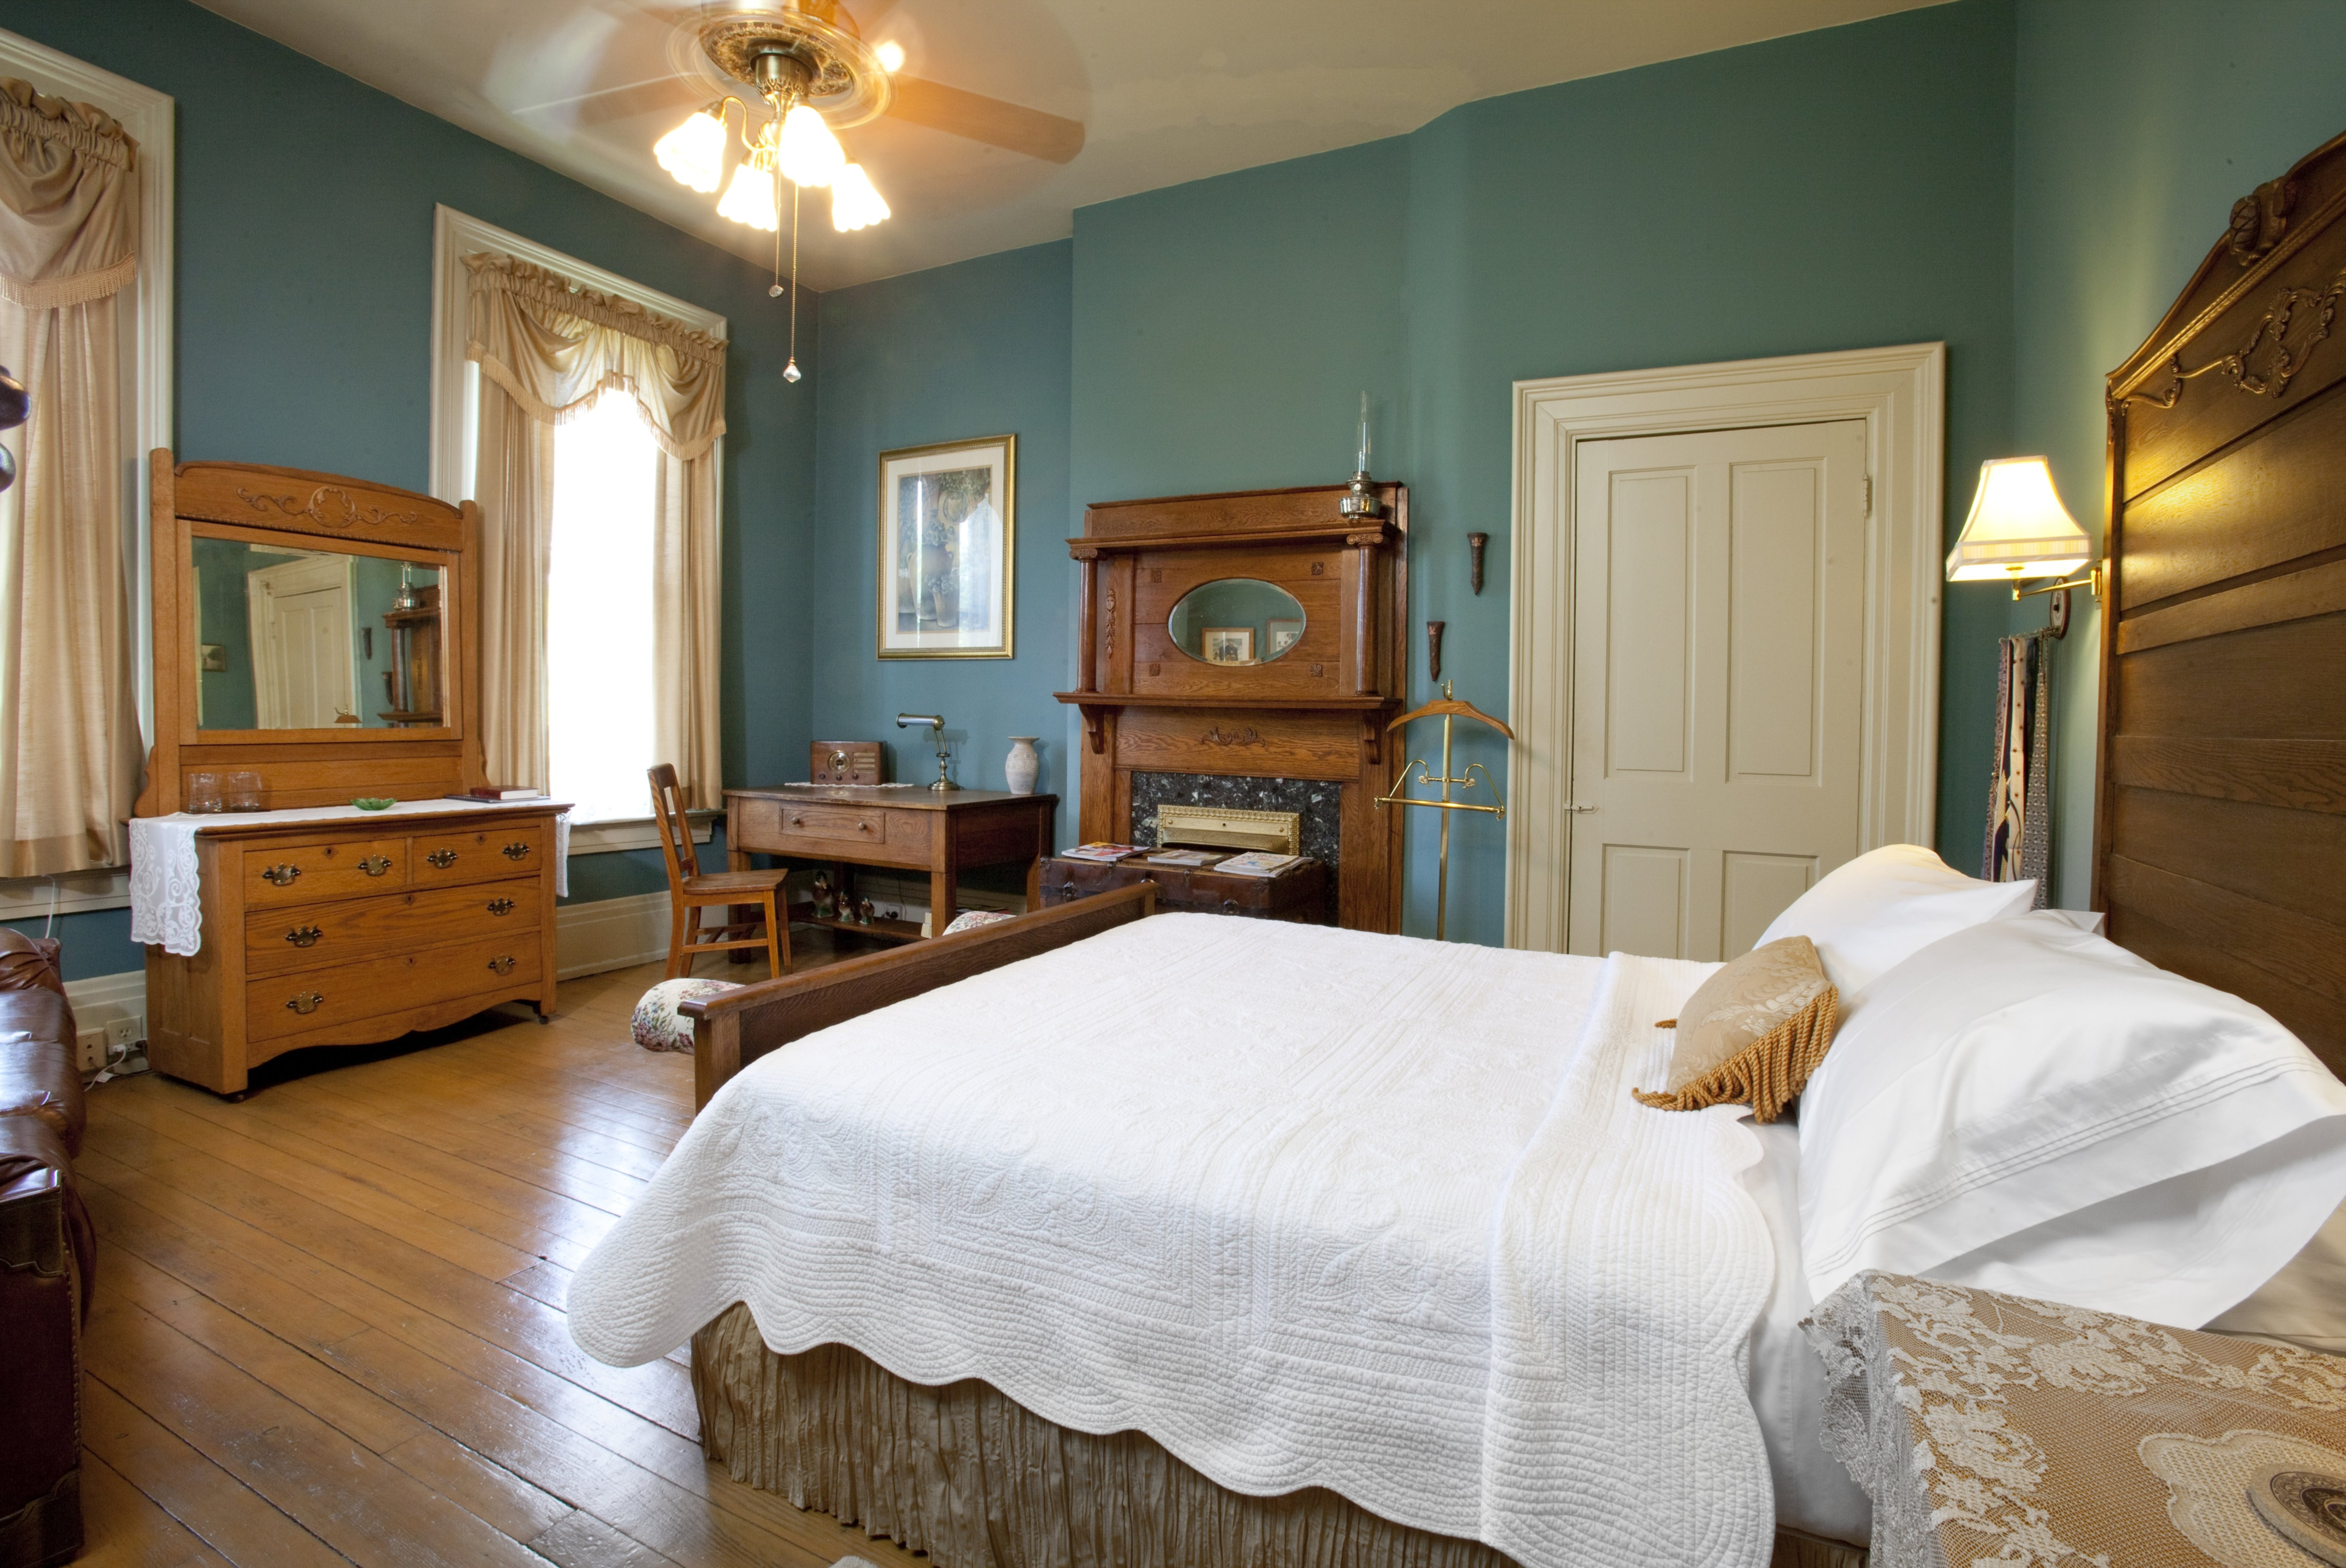 A bedroom with a large bed in a room at Gateway Bed and Breakfast.